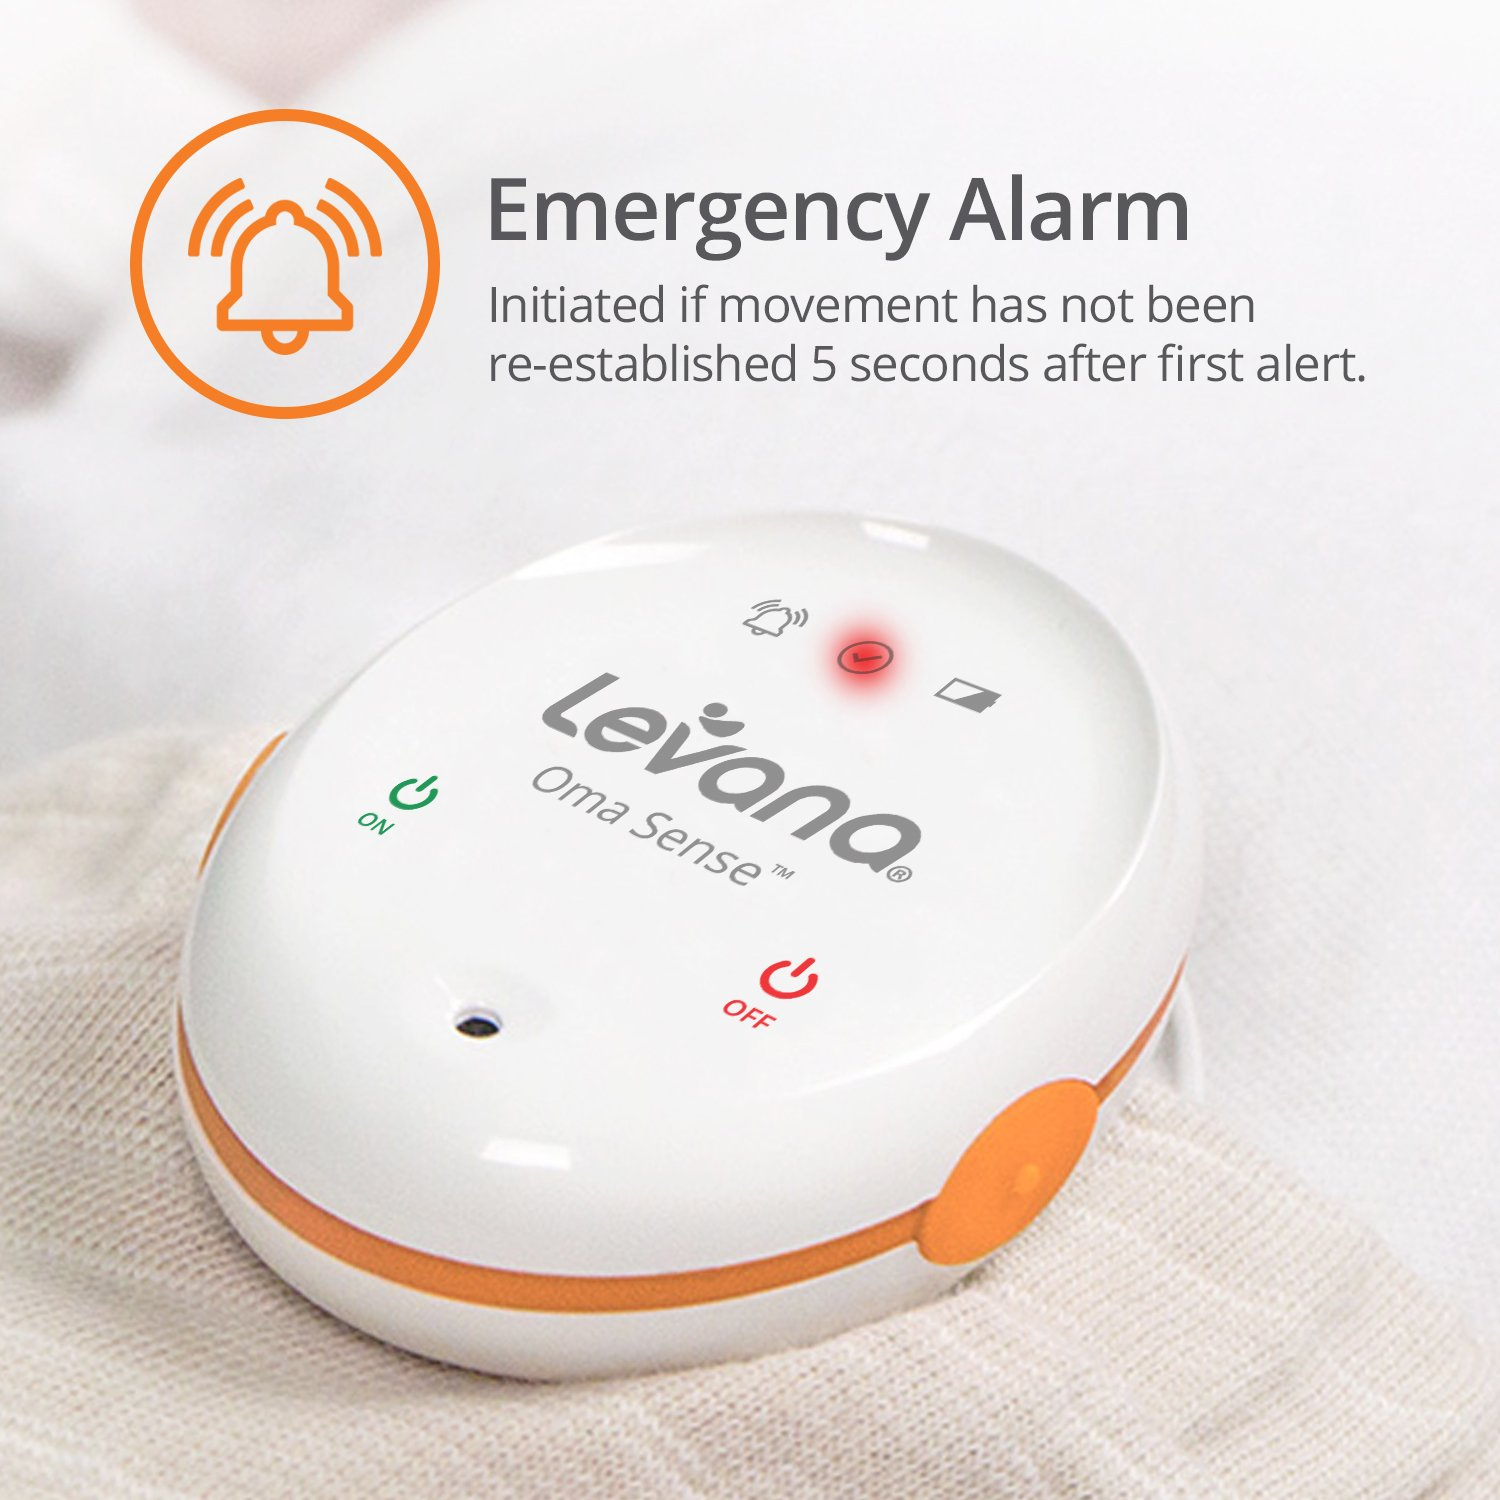 Levana Oma Sense Portable Baby Breathing Movement Monitor with Vibrations and Audible Alerts Designed to Stimulate Baby and Alert Parents by Levana (Image #4)